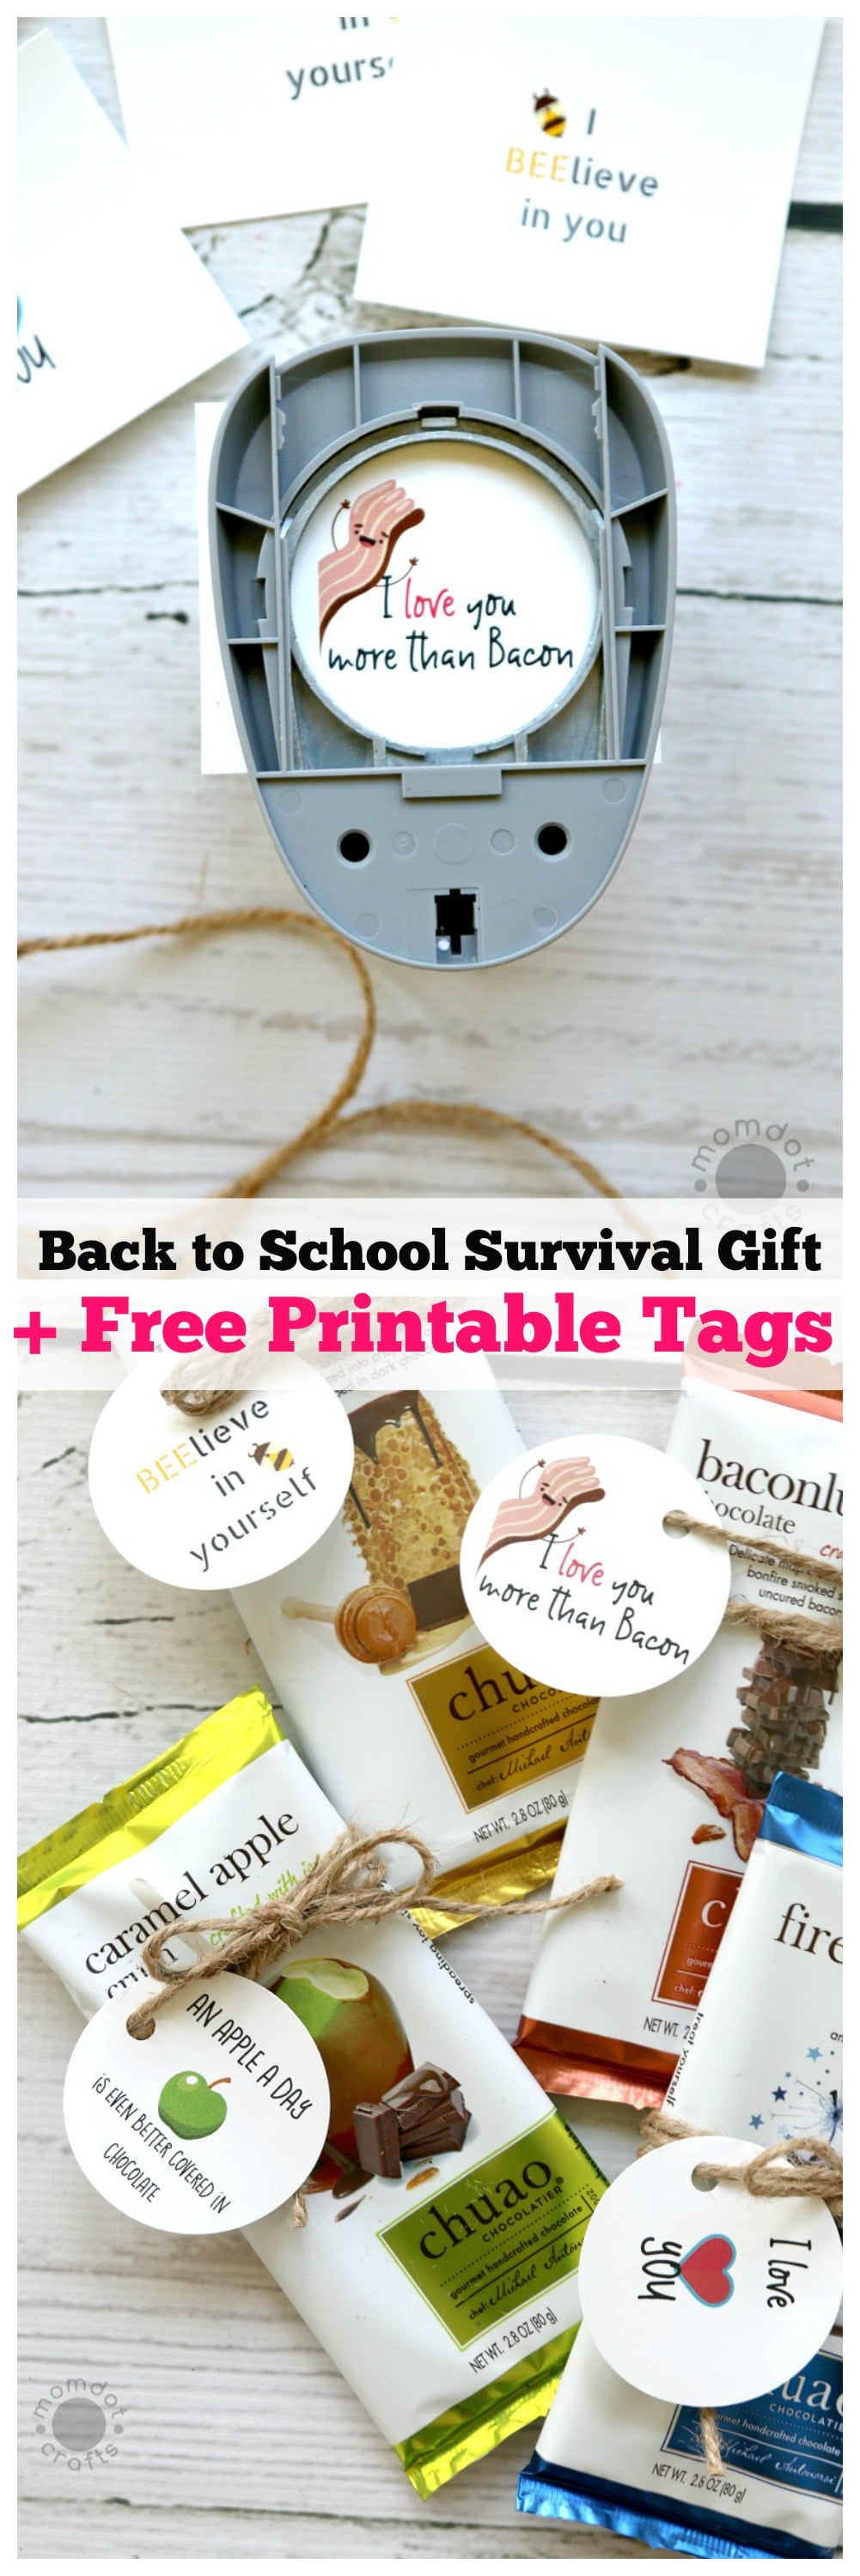 Back to School Survival Gifts for teachers and kids plus FREE PRINTABLE TAGS - FREE Chocolate Bar Tag printables : Treat someone special with a unique candy bar and tag it with this free printable, fun inspiration for parents, teachers, and gifting